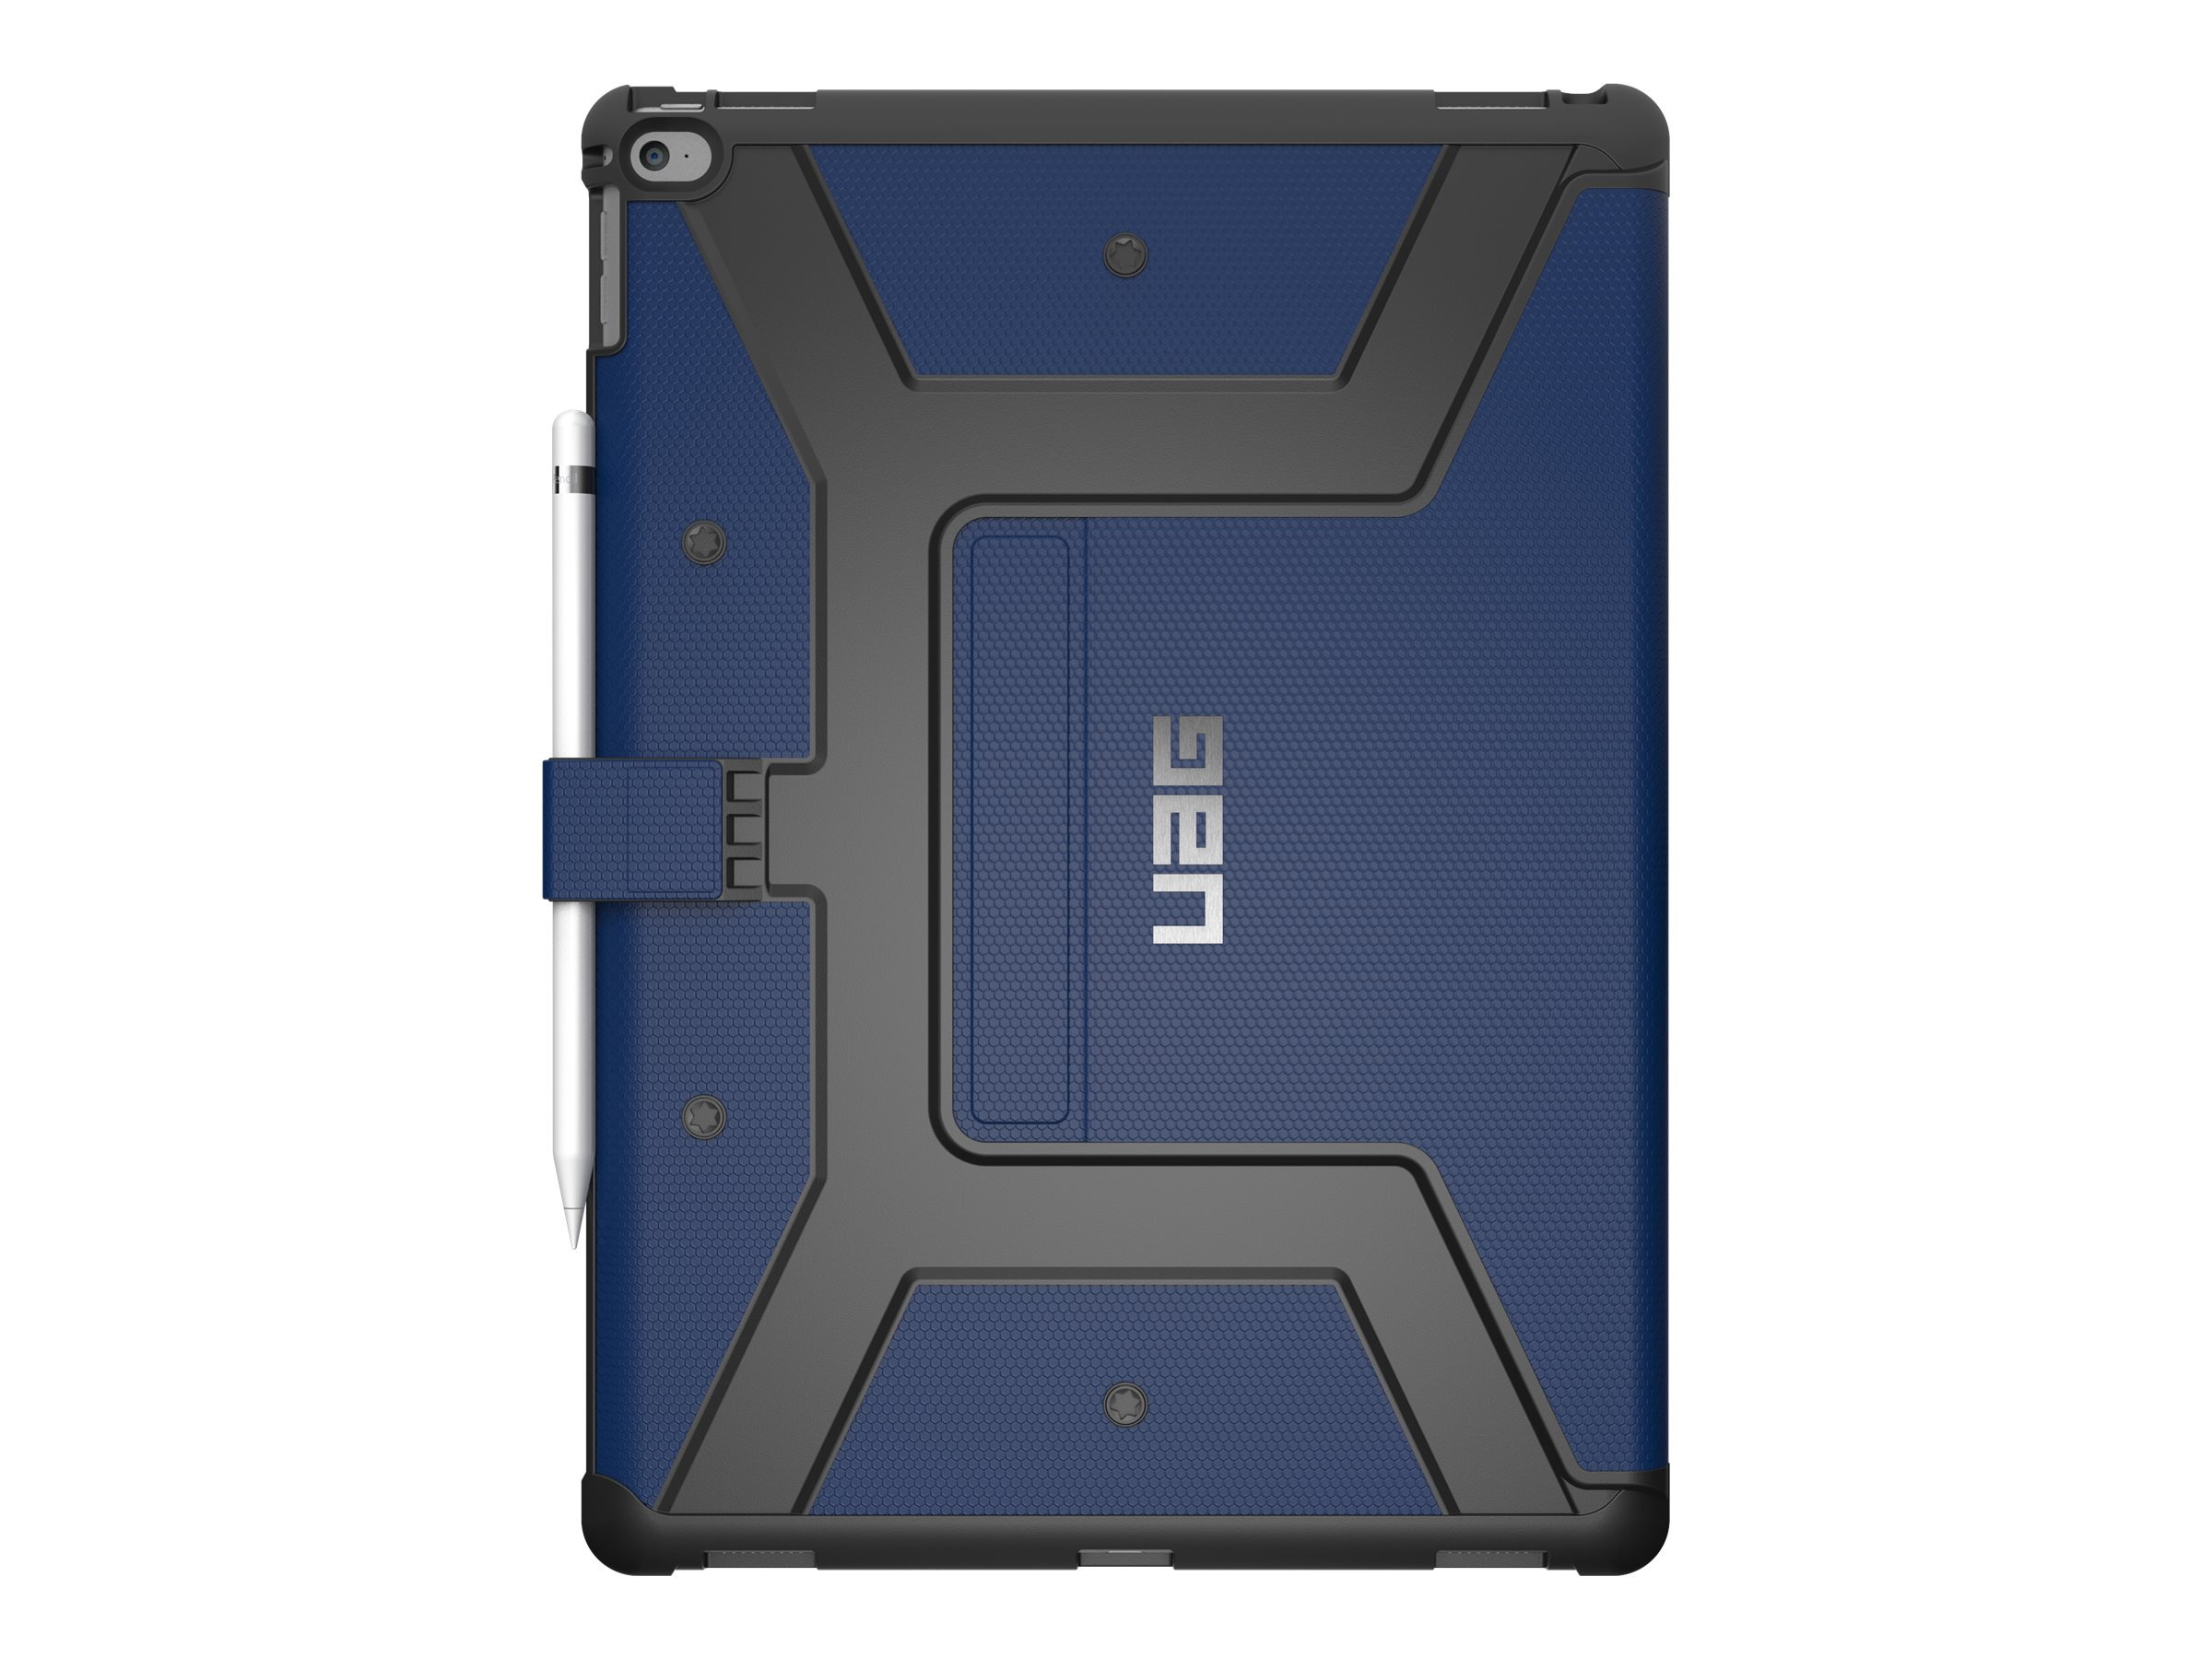 Urban Armor Case for iPad Pro 12.9, Cobalt, IPDPRO12.9-E-CB